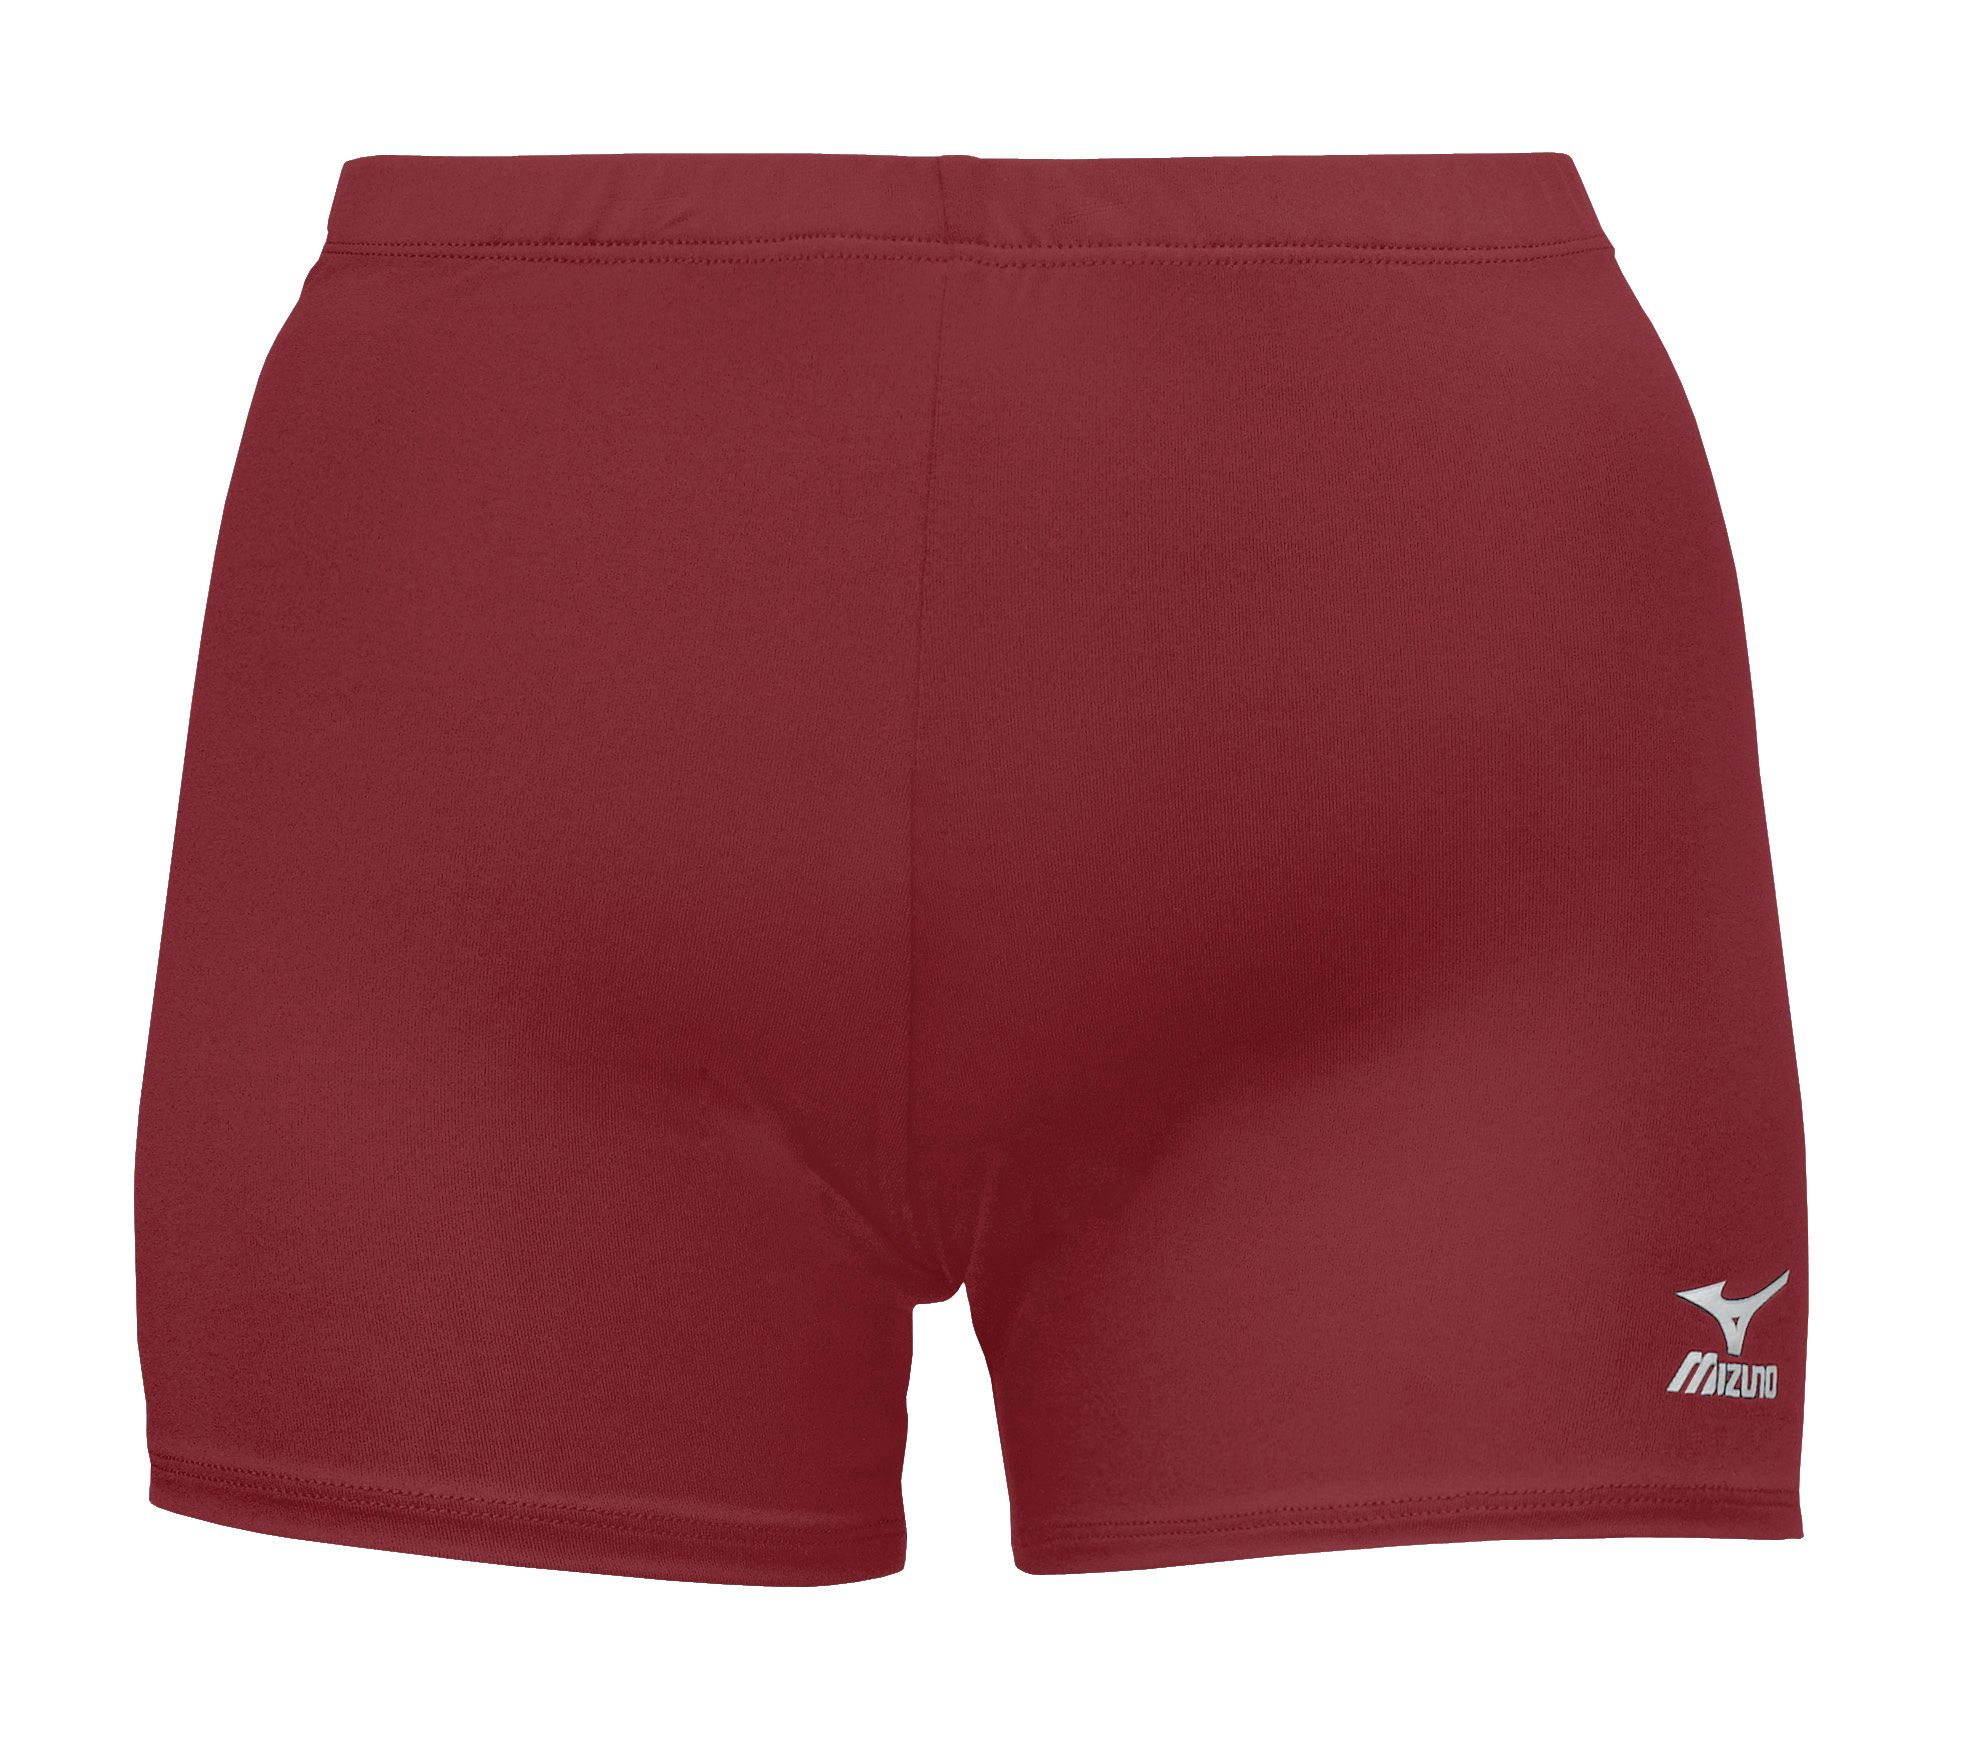 mizuno spandex volleyball shorts prices free